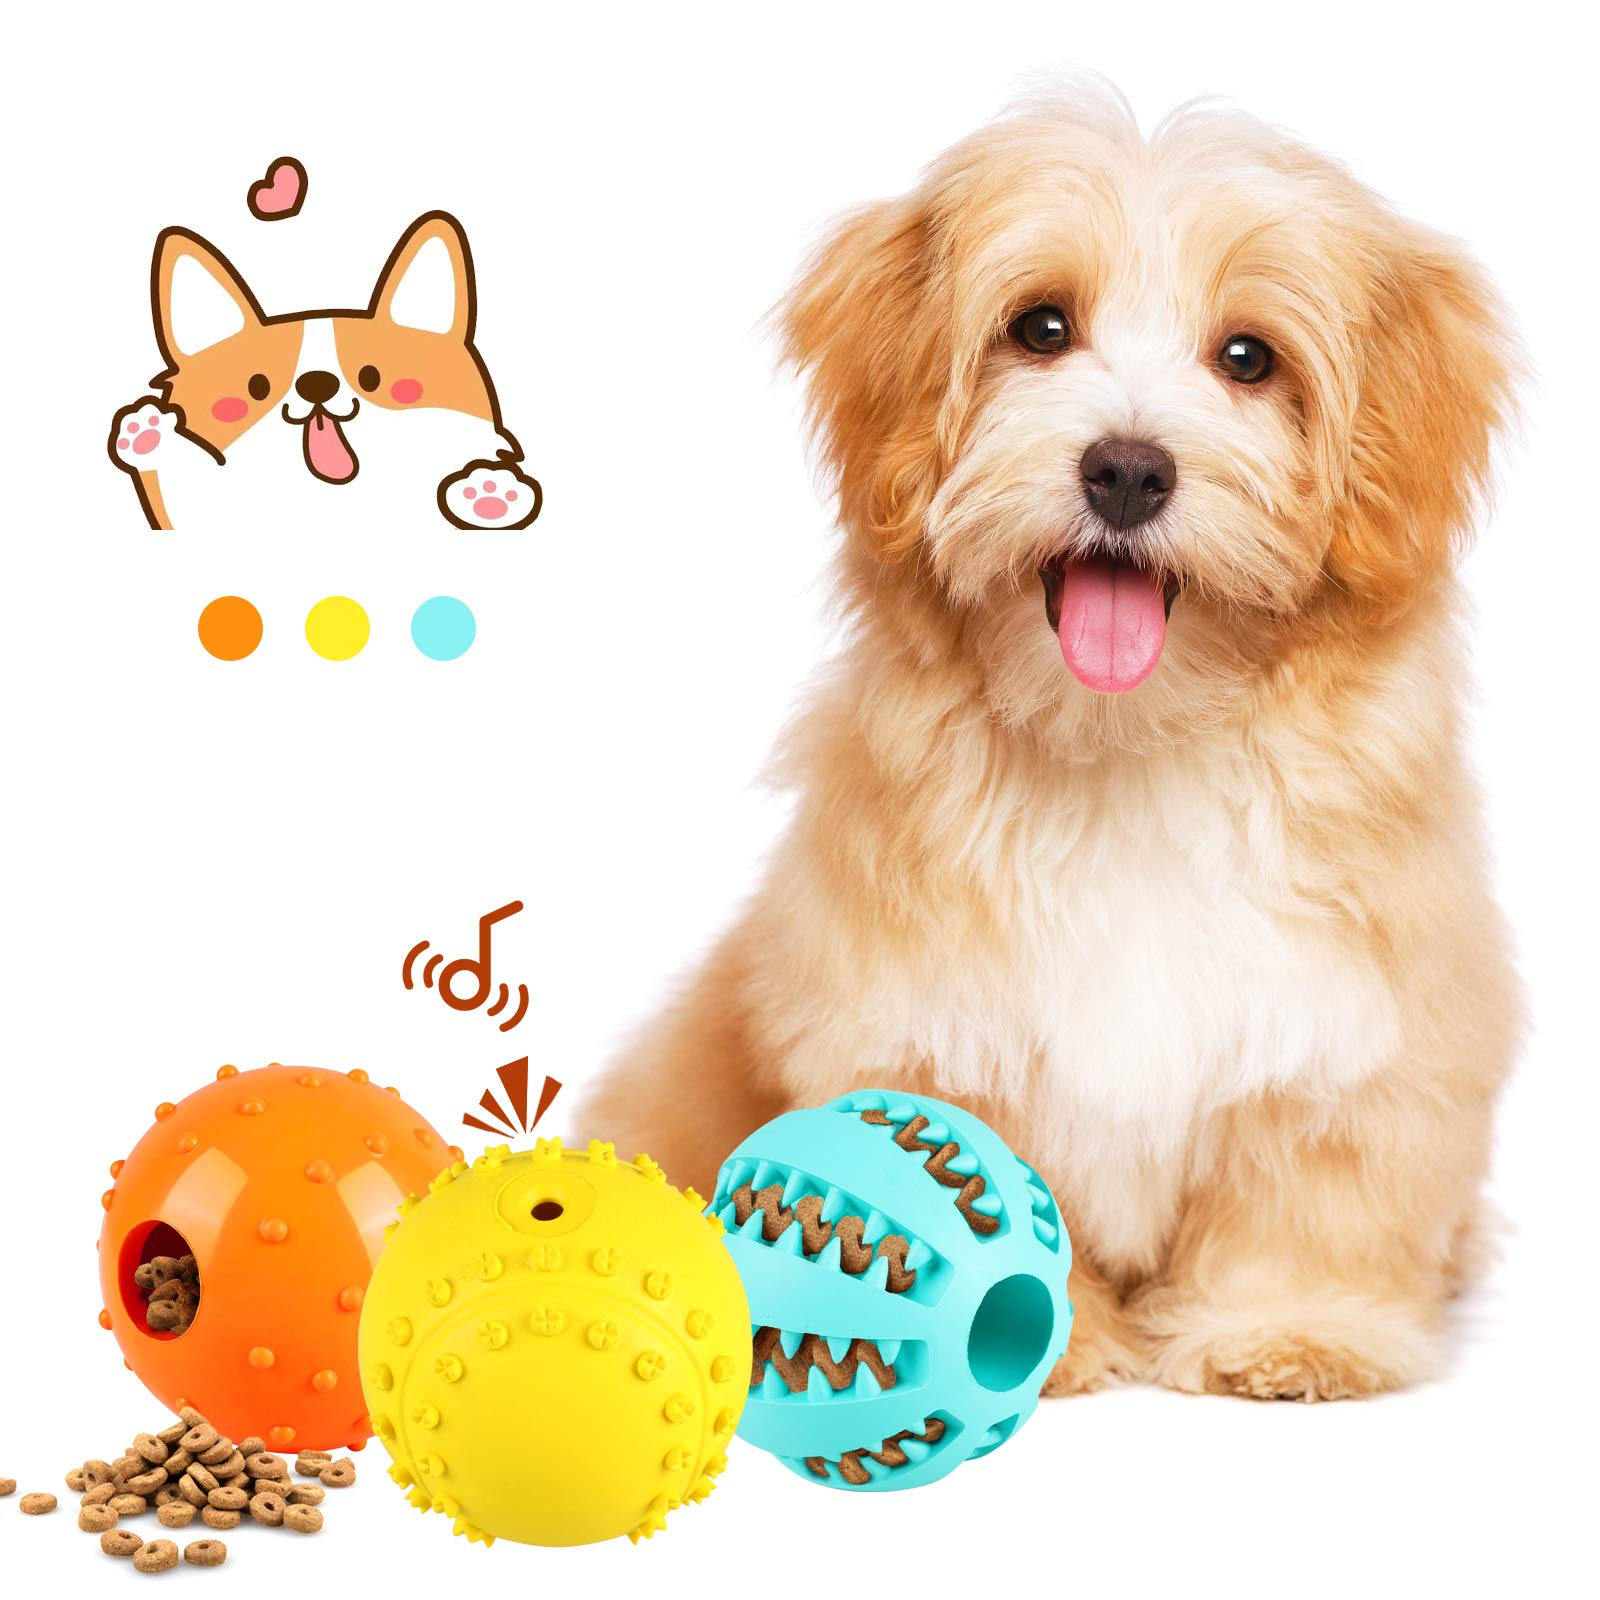 Slopehill Interactive Dog Toys Balls - Durable IQ Treat Dispensing Dog Toys Ball Tough Puzzle Squeaky Tennis Balls 3 Pack for Puppy Teething Small Medium Large Dogs Teeth Cleaning Chewing Playing